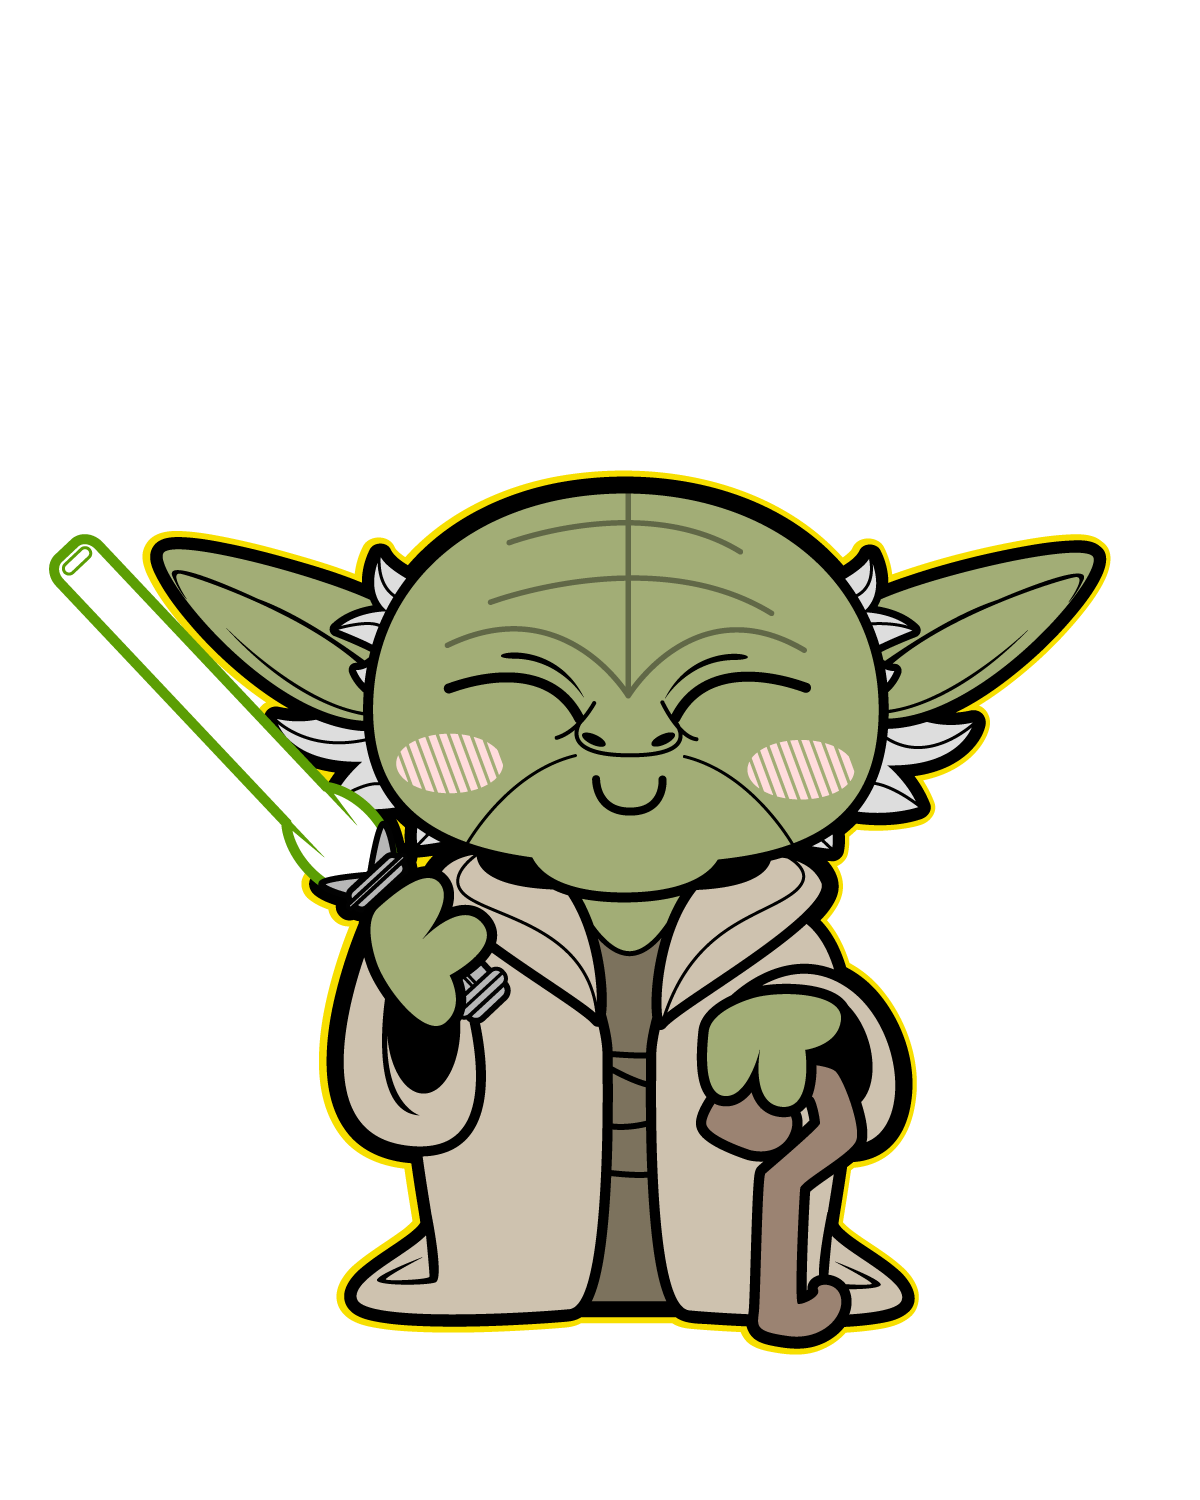 Star wars ewok clipart svg I really love Star Wars XD movies, games and anything! and this is ... svg